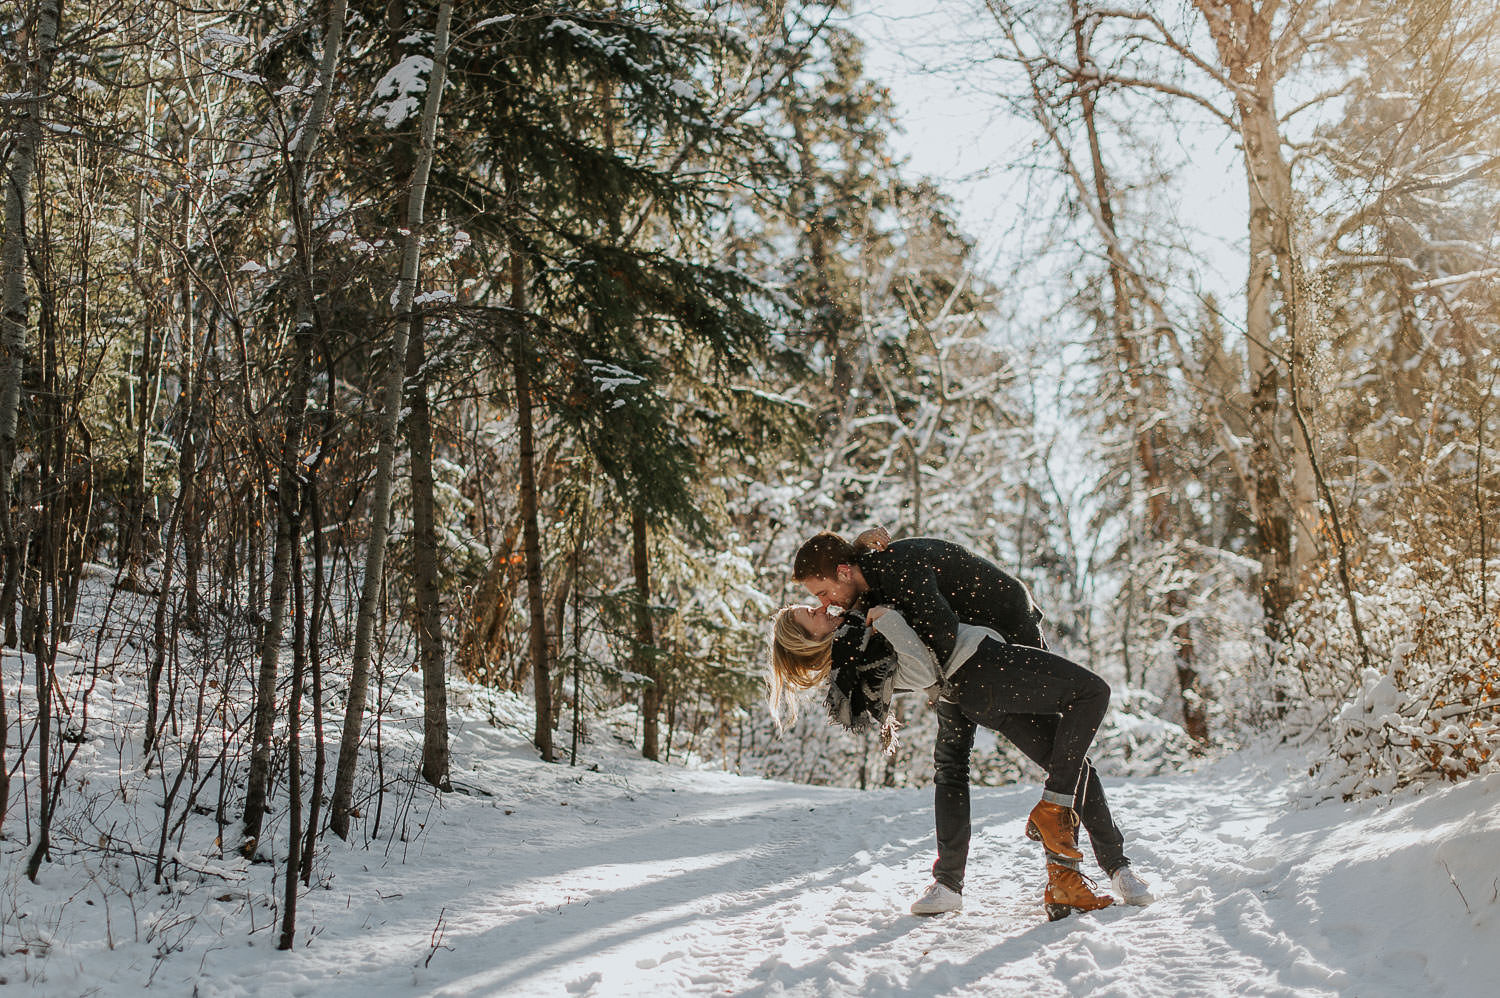 edmonton winter wedding photographer